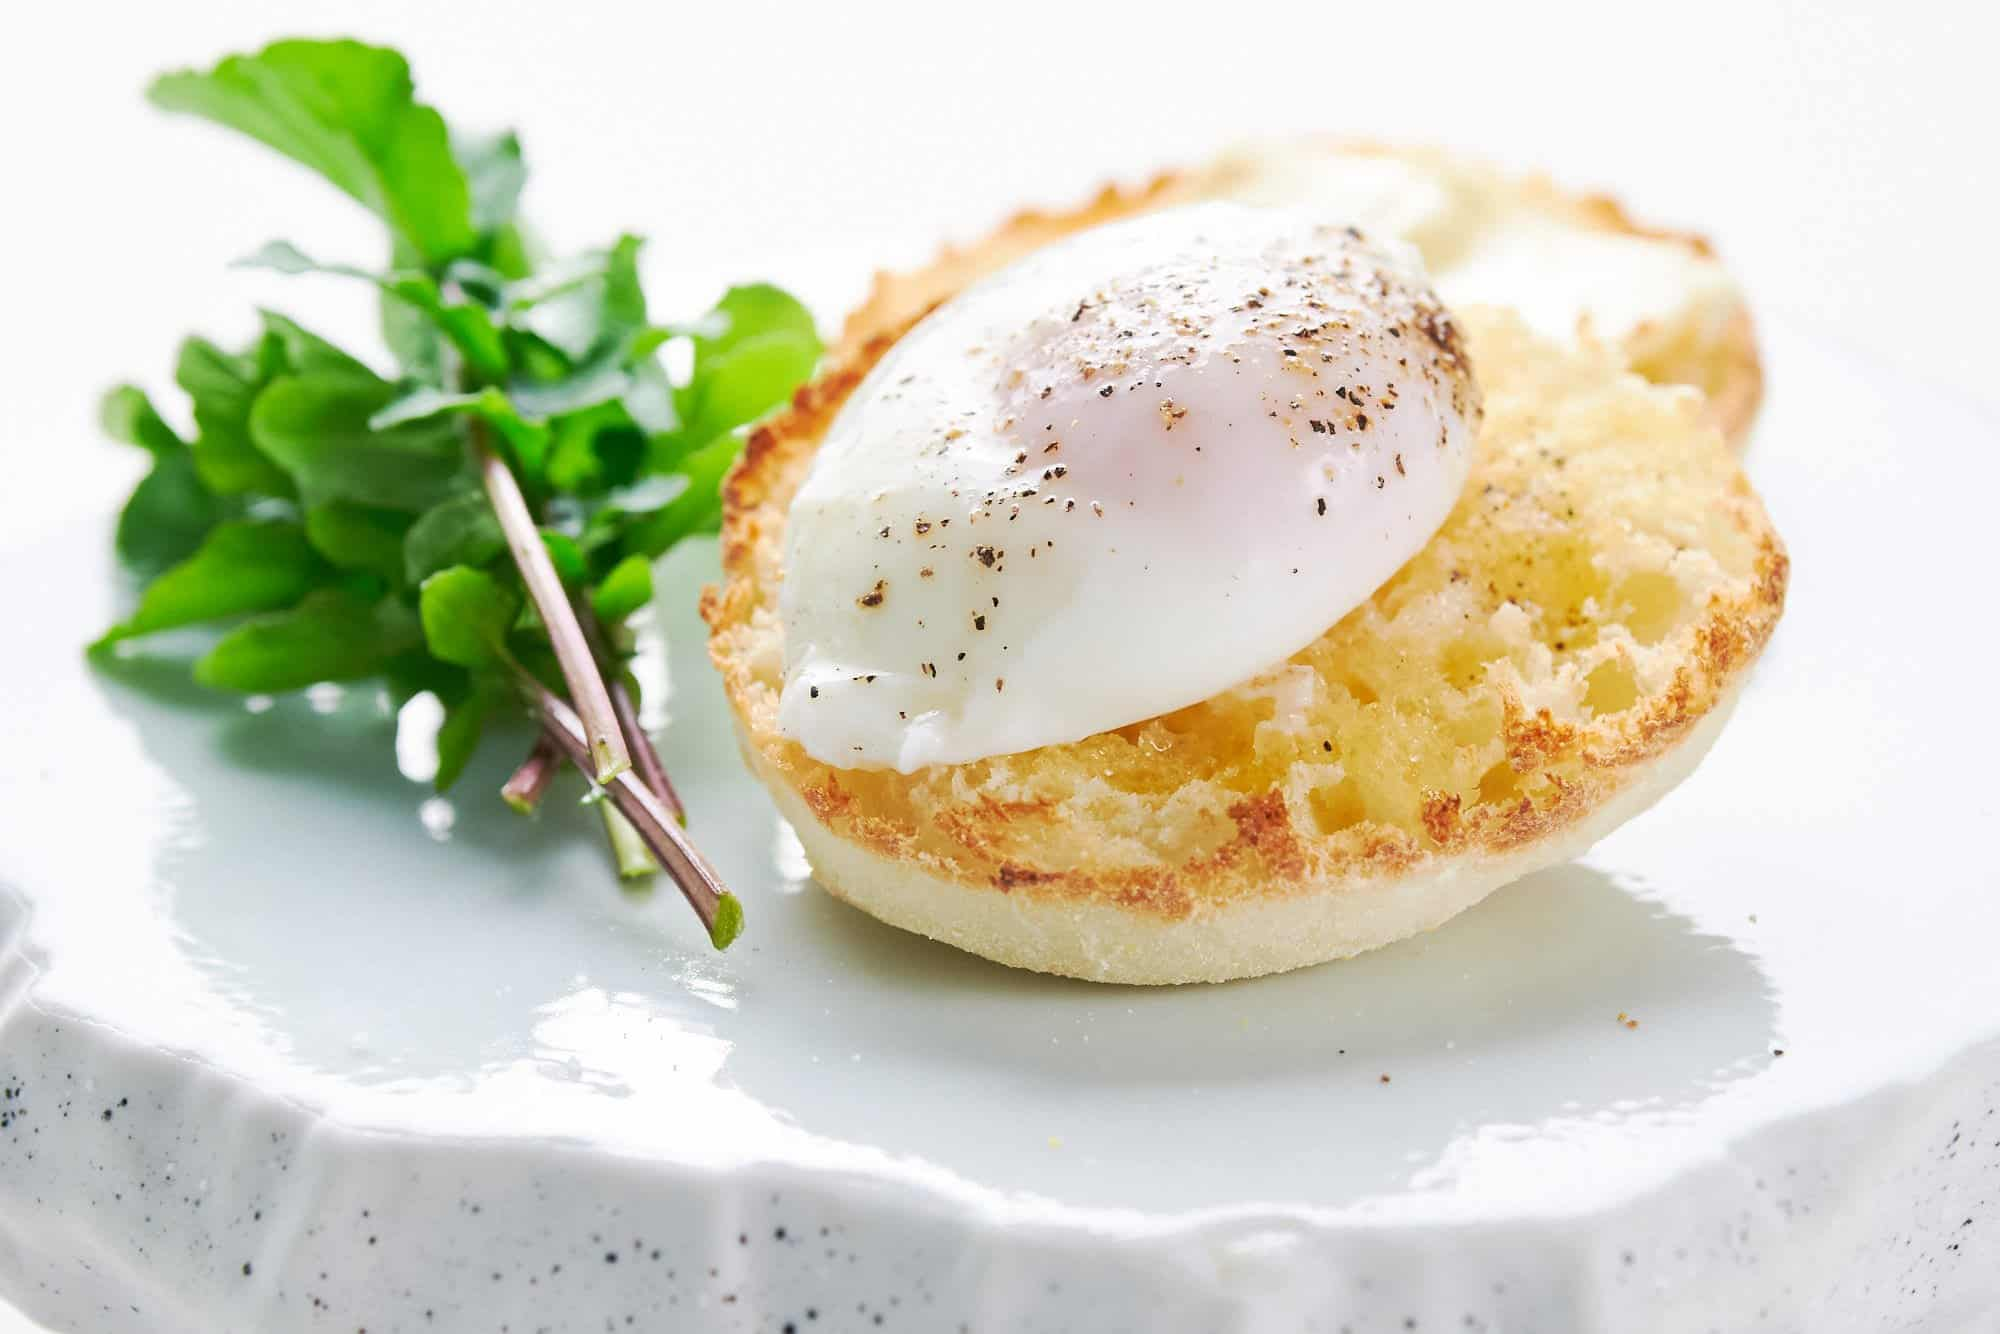 Perfect oval poached egg without whispy egg whites on toasted english muffin with arugula.